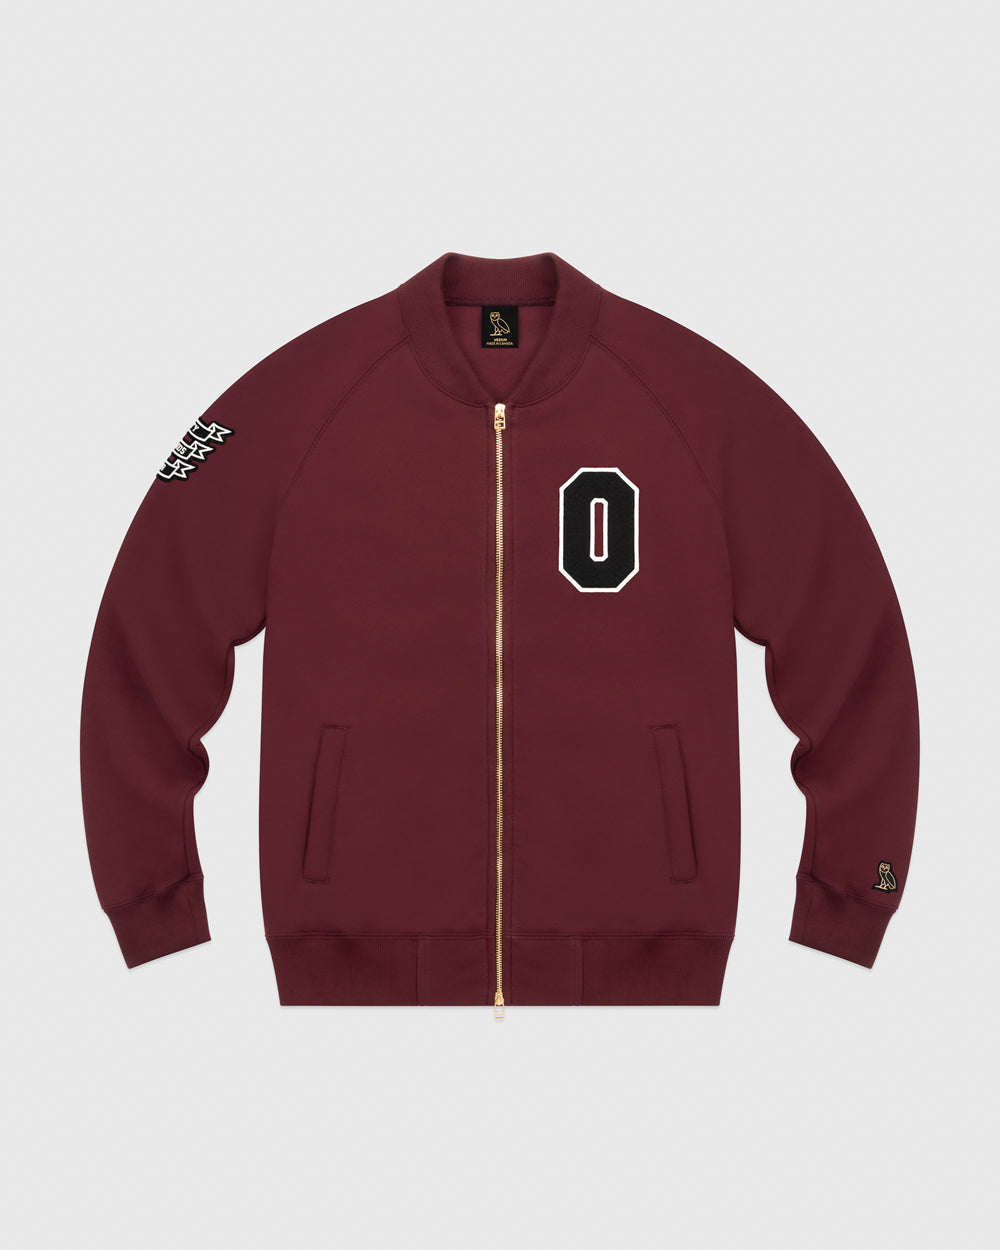 OVO TOURNAMENT BOMBER - BURGUNDY